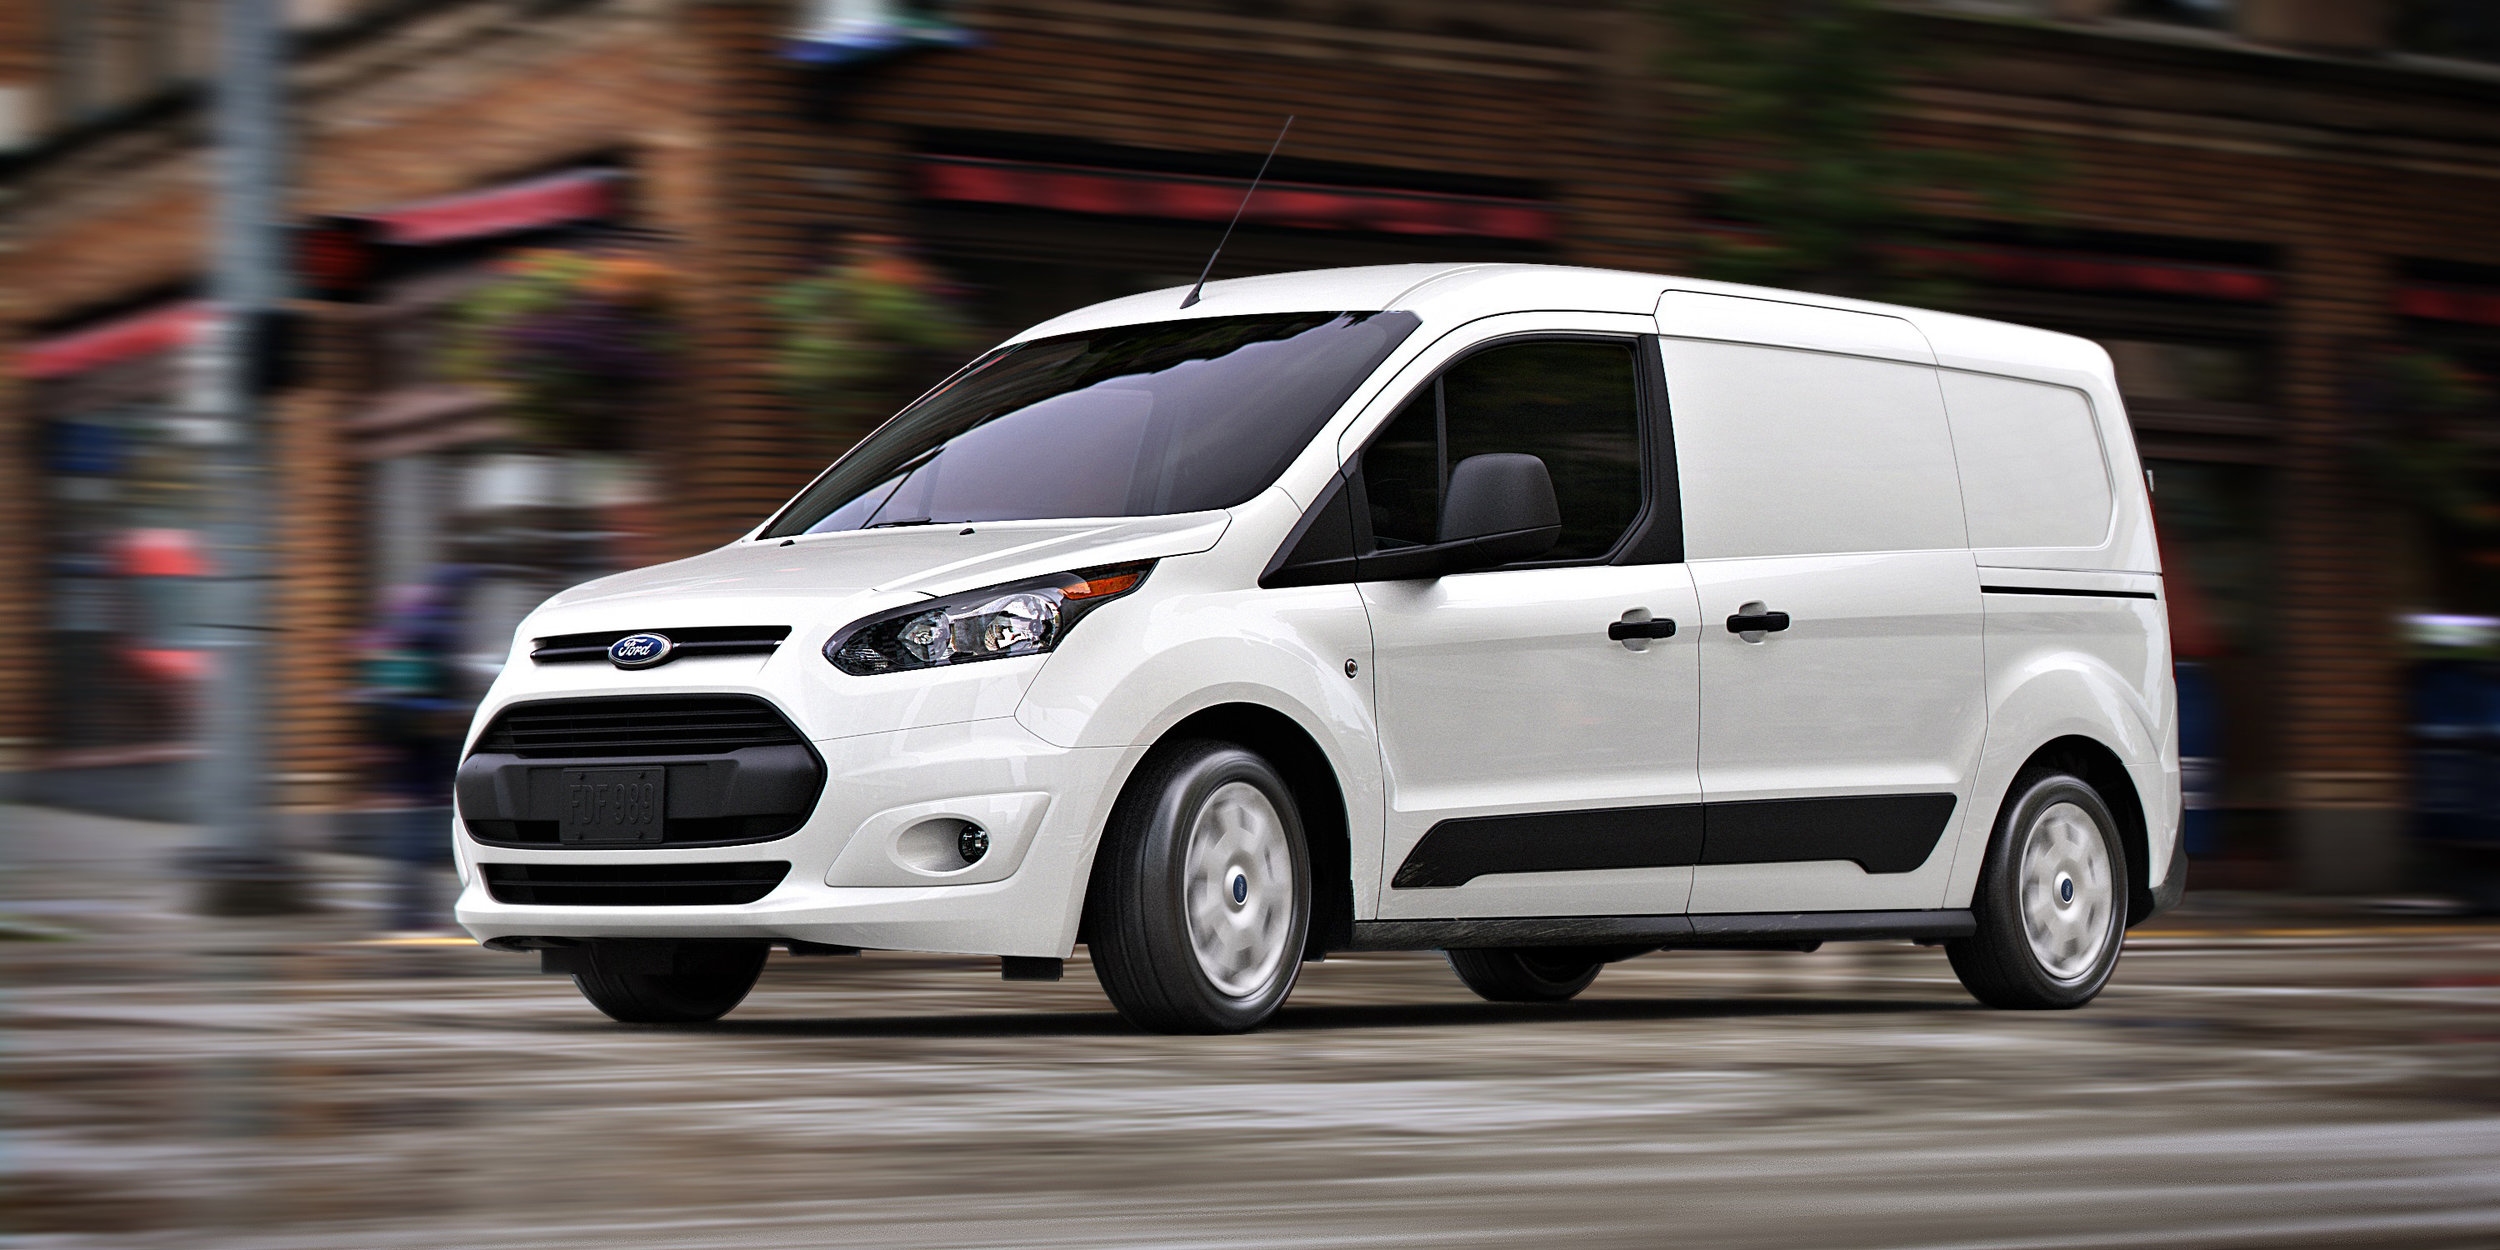 The Ford Transit Connect was such a hit in North America that it became the standard delivery van for Canada's national postal service.